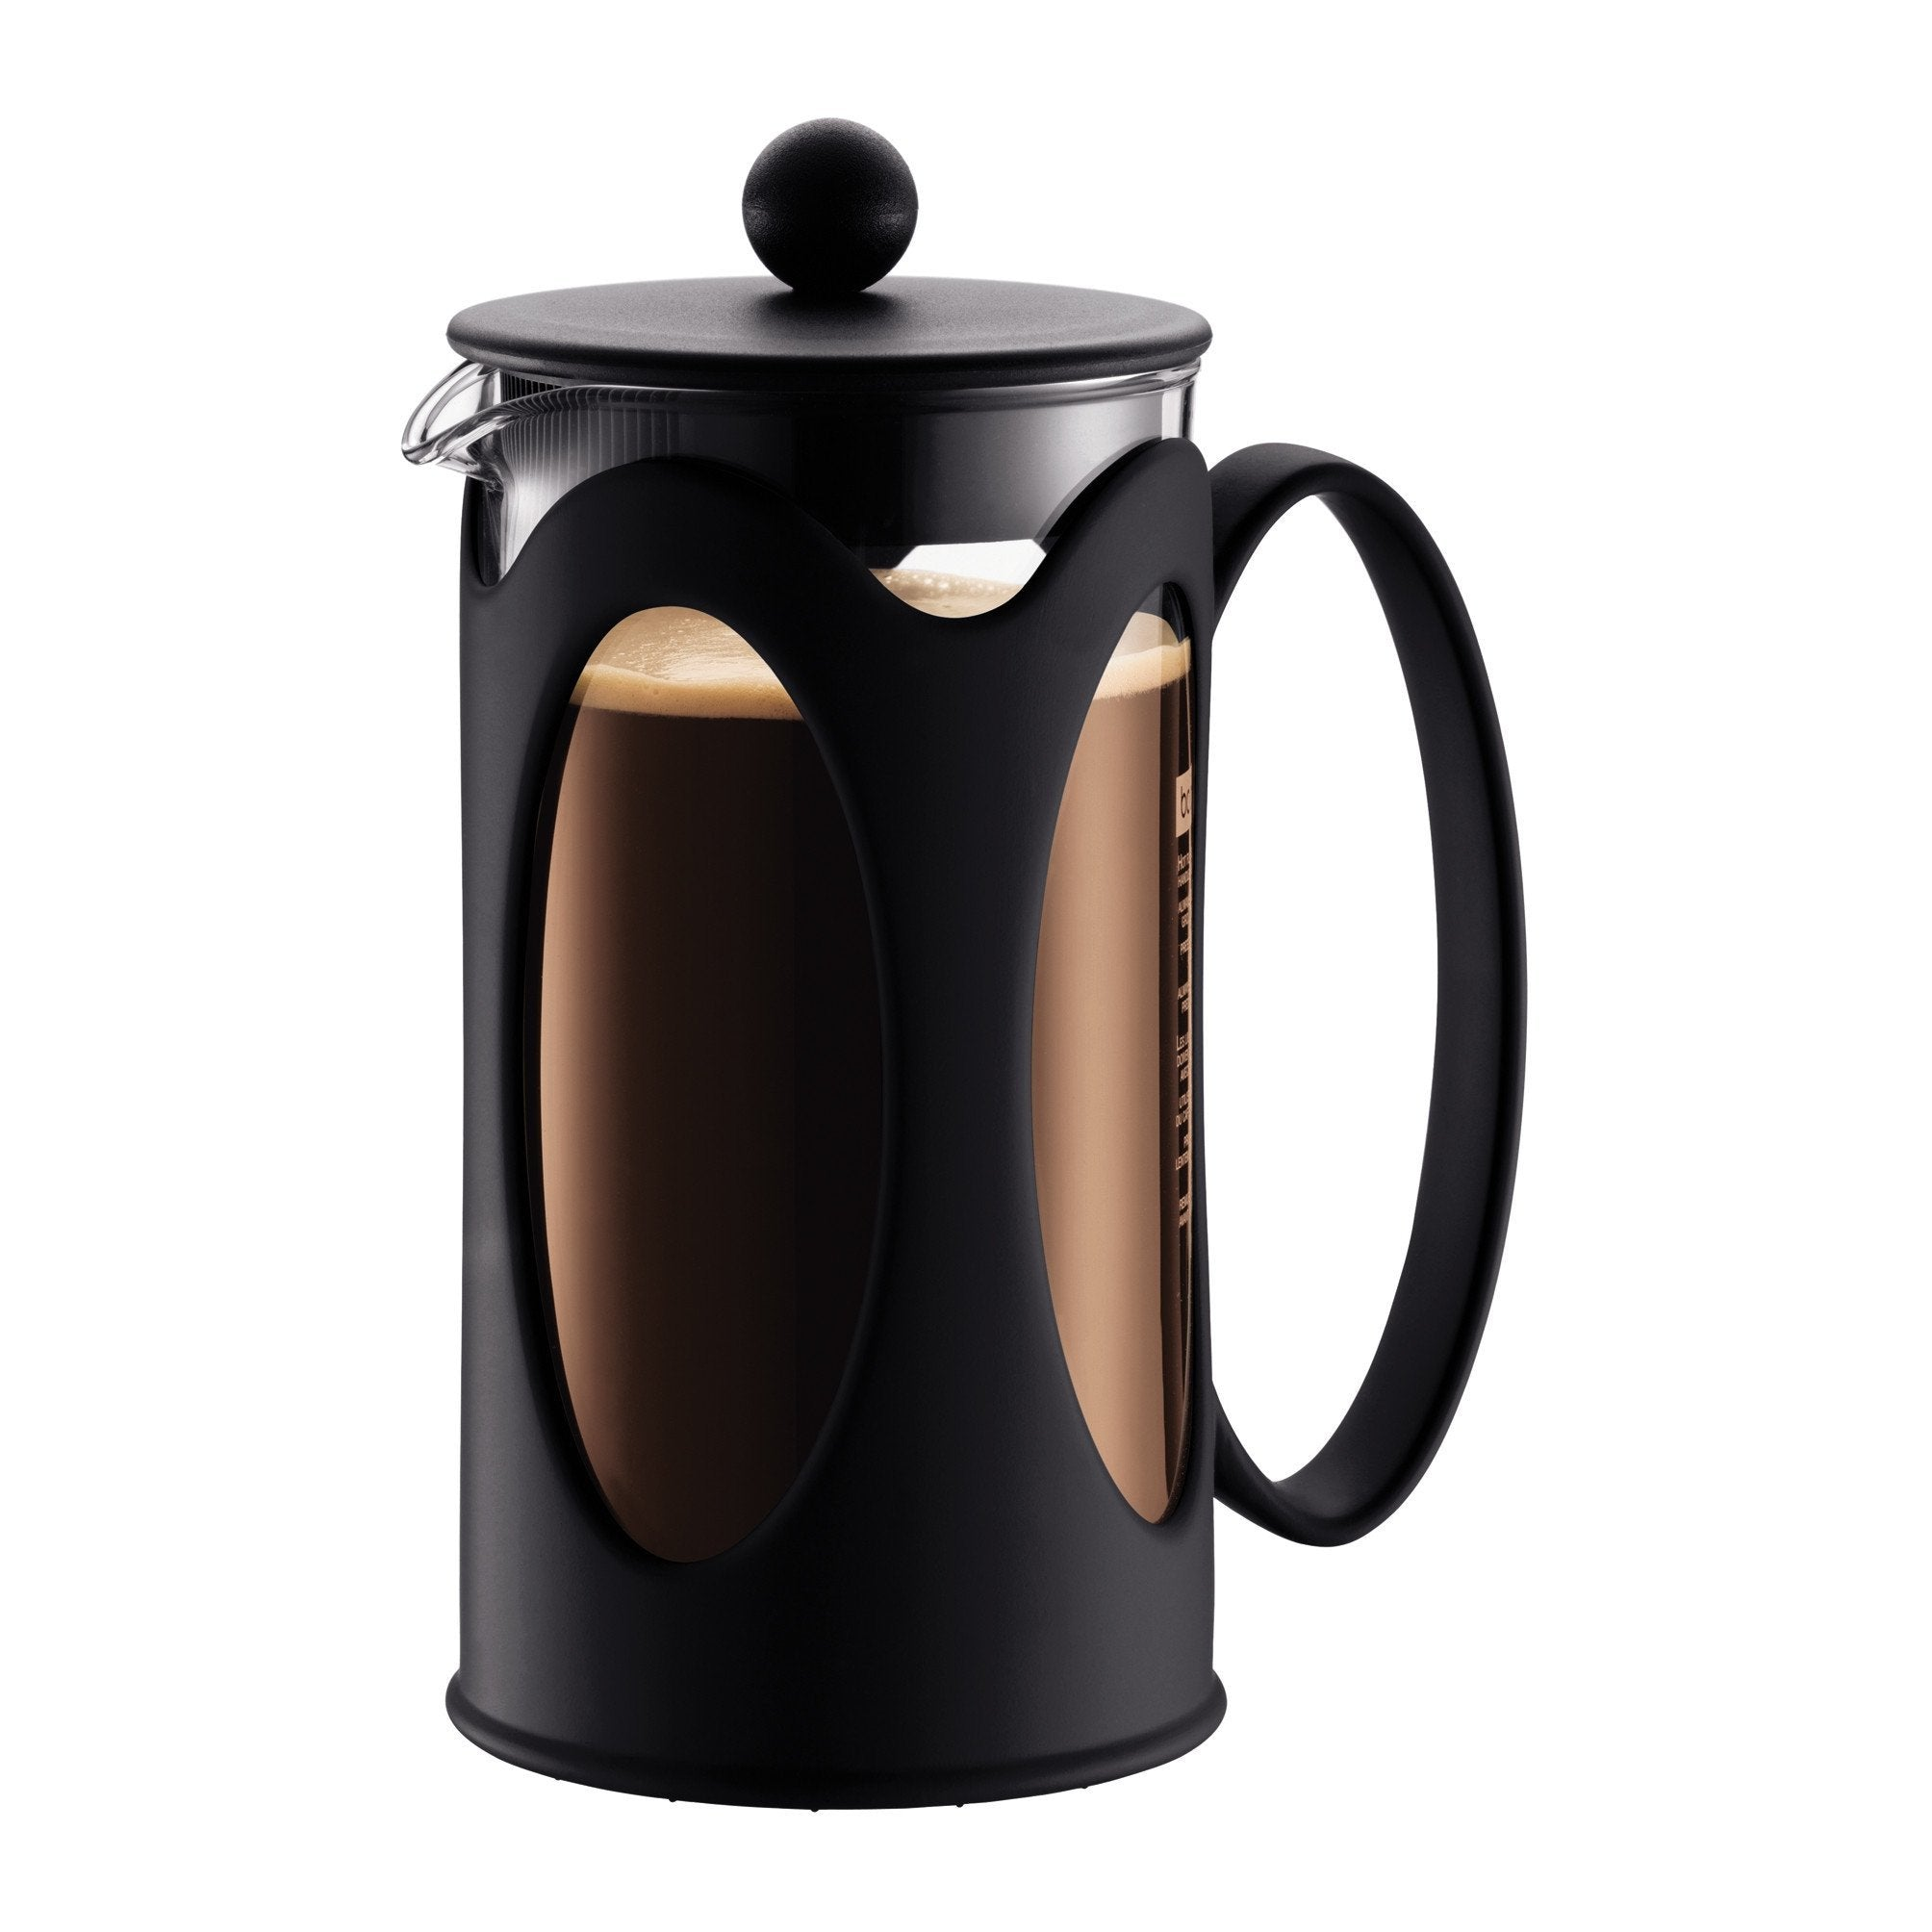 KENYA Coffee maker, Black 8 cup, 1.0 l, 34 oz